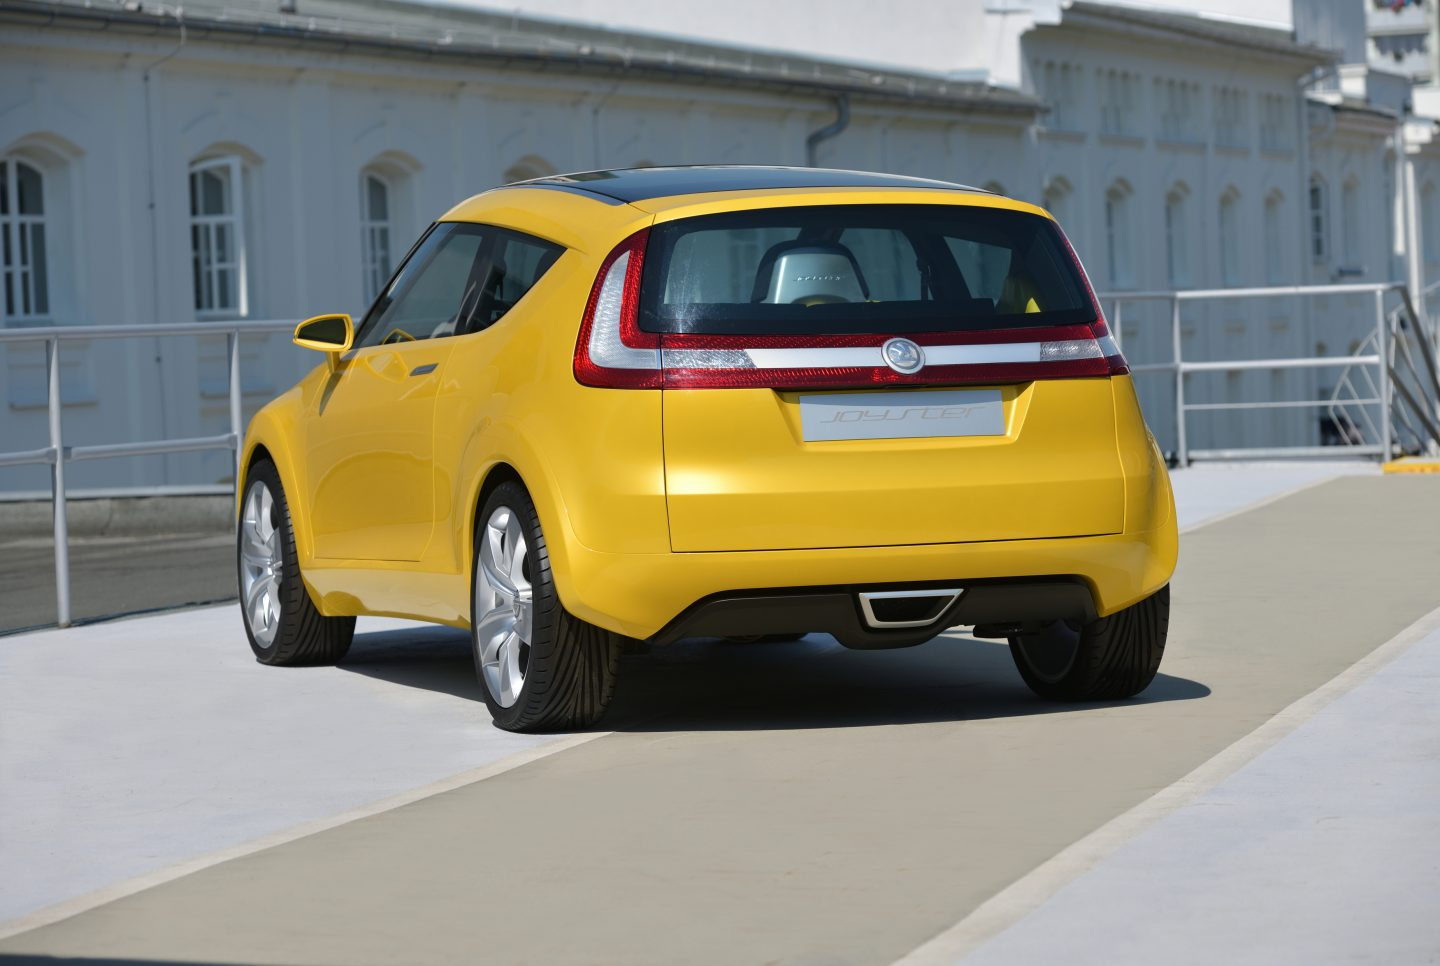 skoda-joyster-design-rear-shot-exterior